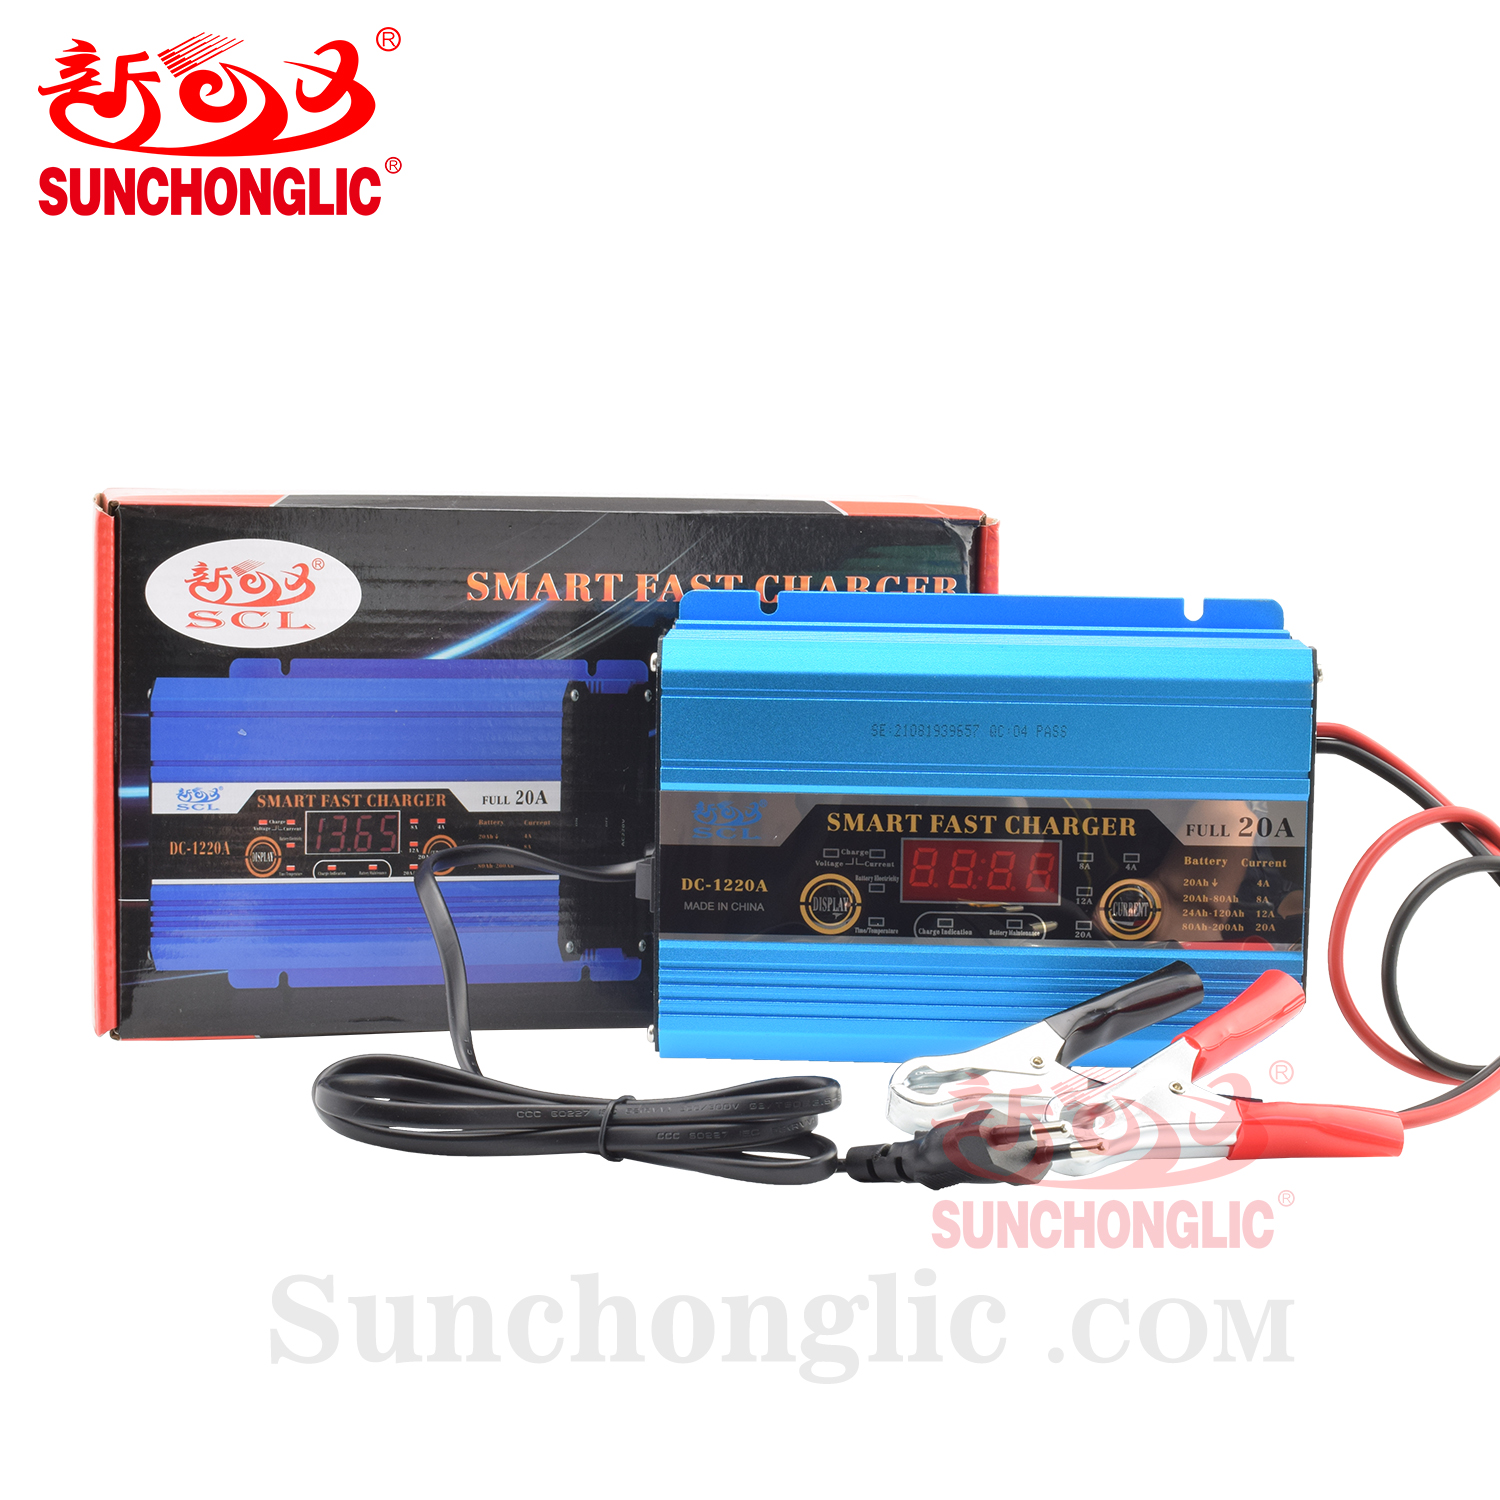 Sunchonglic intelligent 12v 20a car battery charger lead acid battery charger